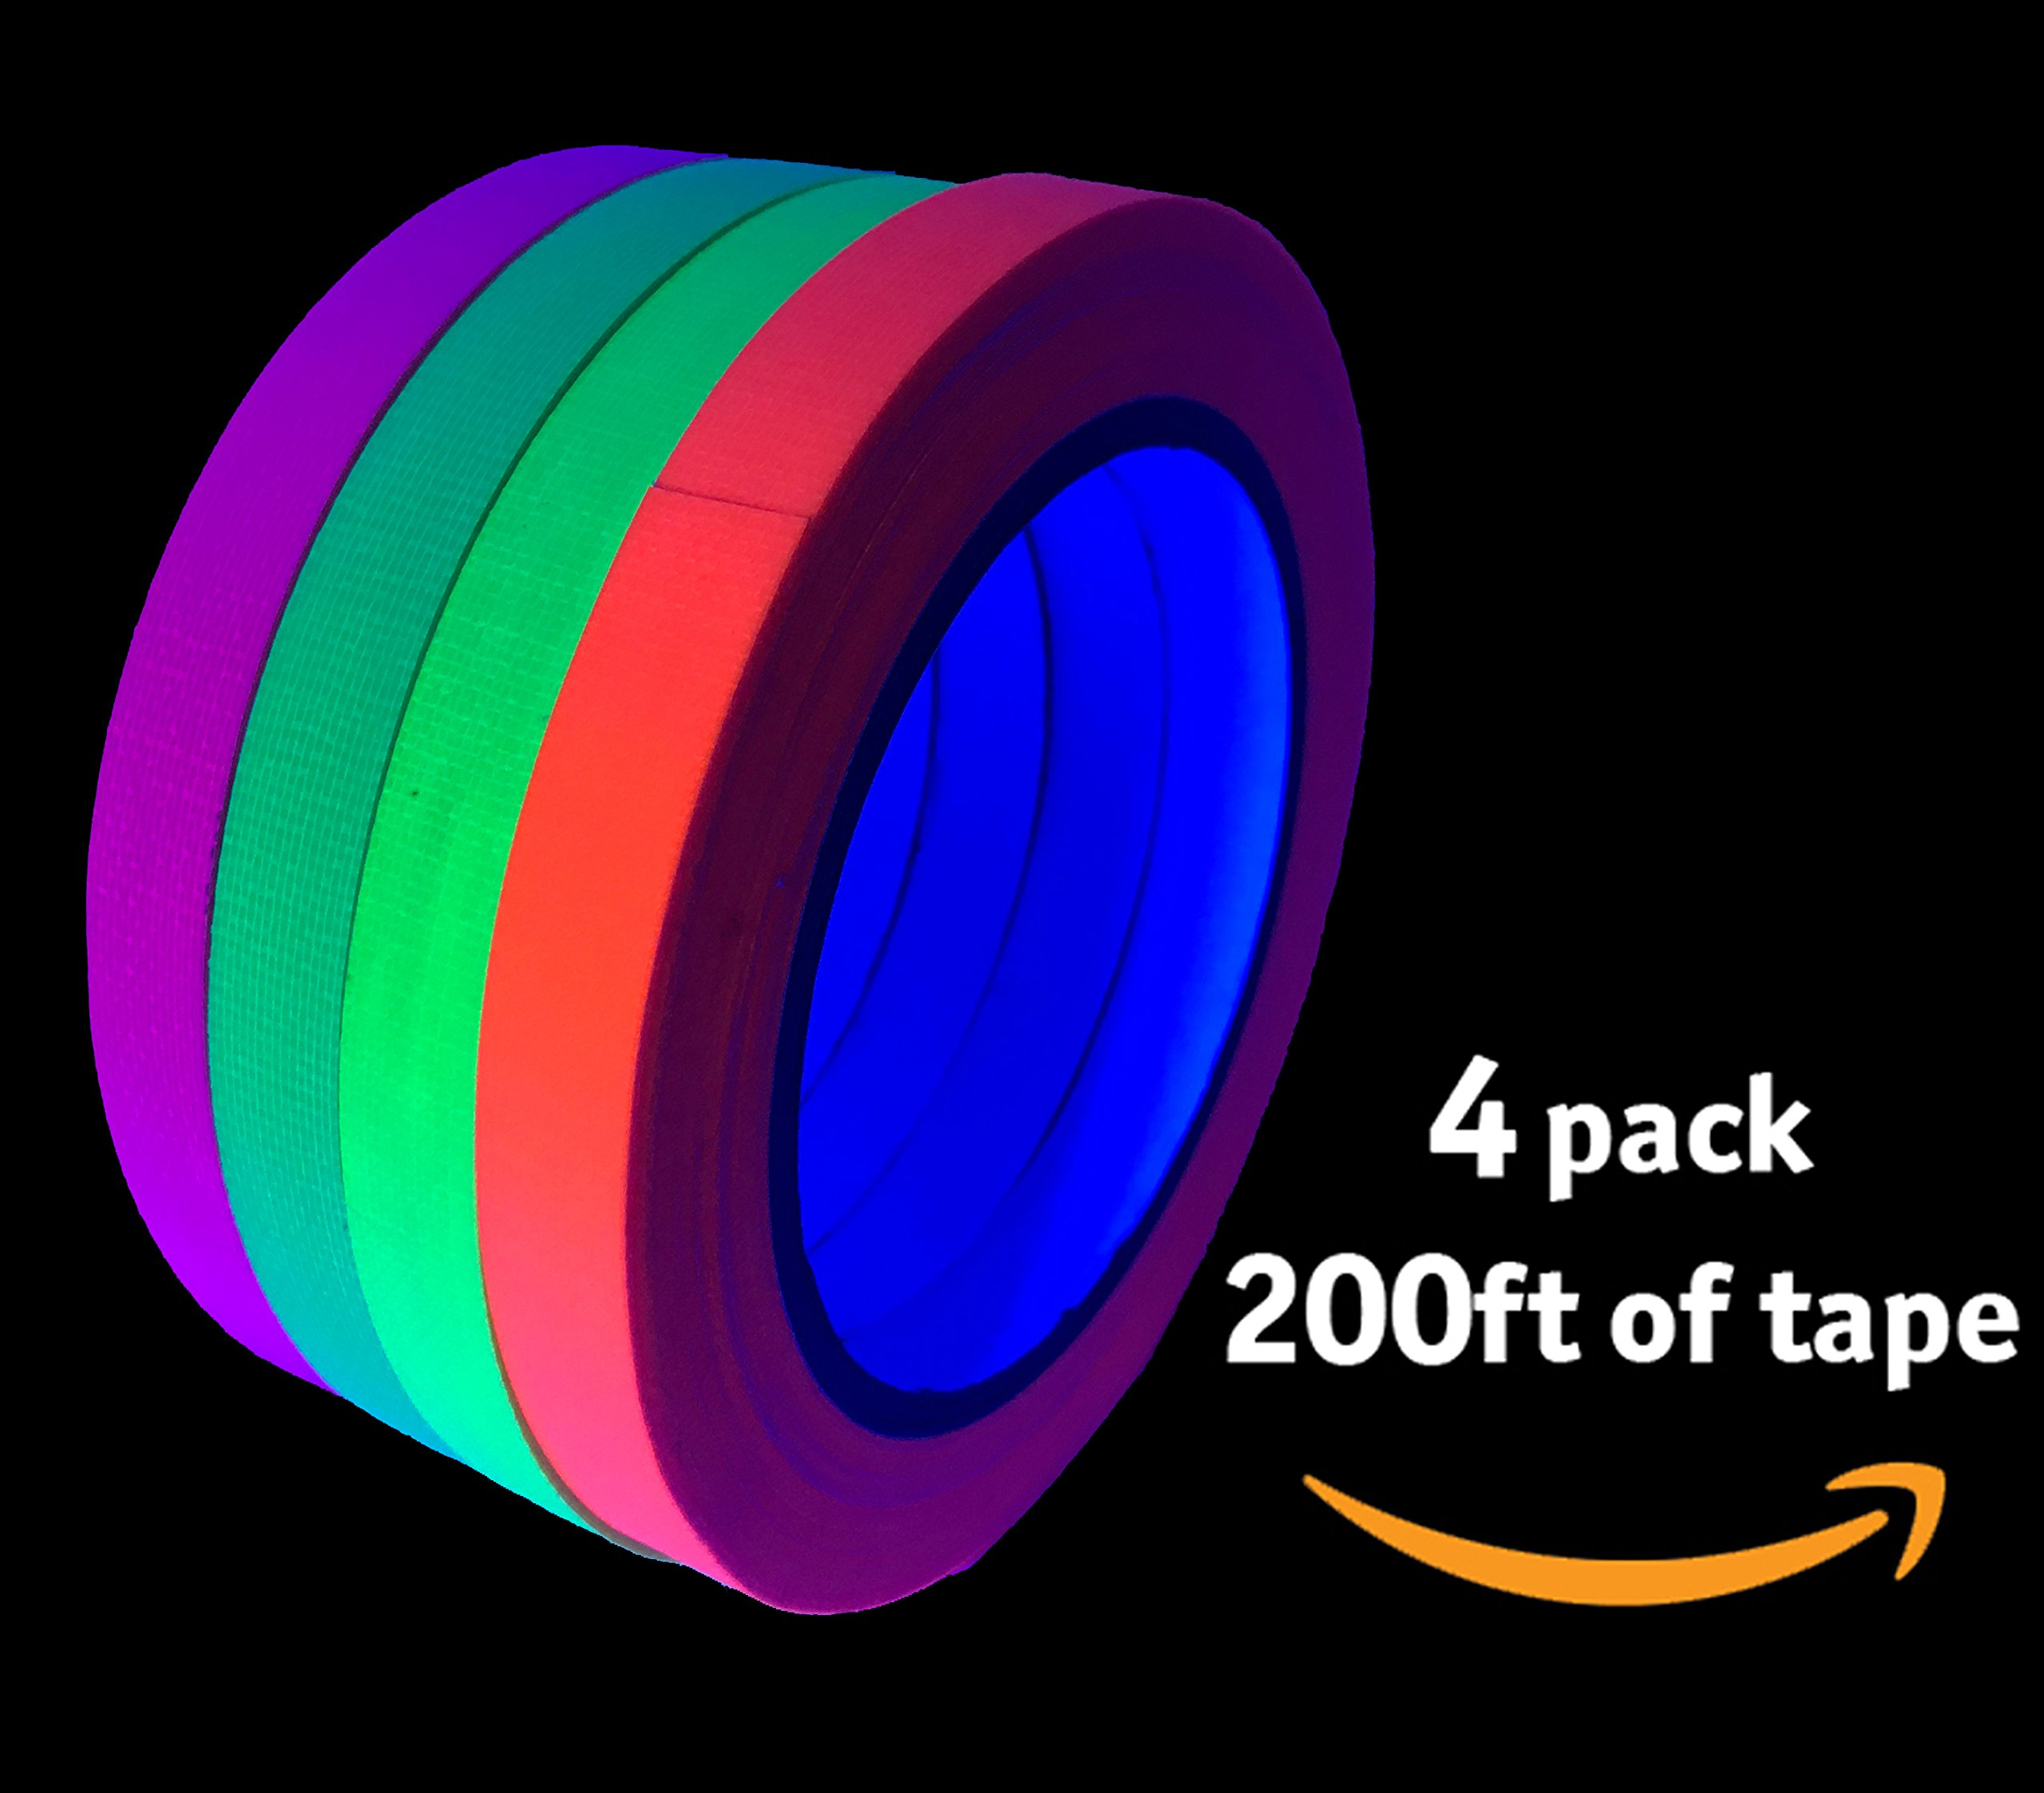 Glow Party UV Blacklight Reactive 200 ft. total - GREAT VALUE - Fluorescent Neon Tape 1/2 in x 50 ft - (4 Pack - Pink, Green, Yellow, Orange - Matte Finish)